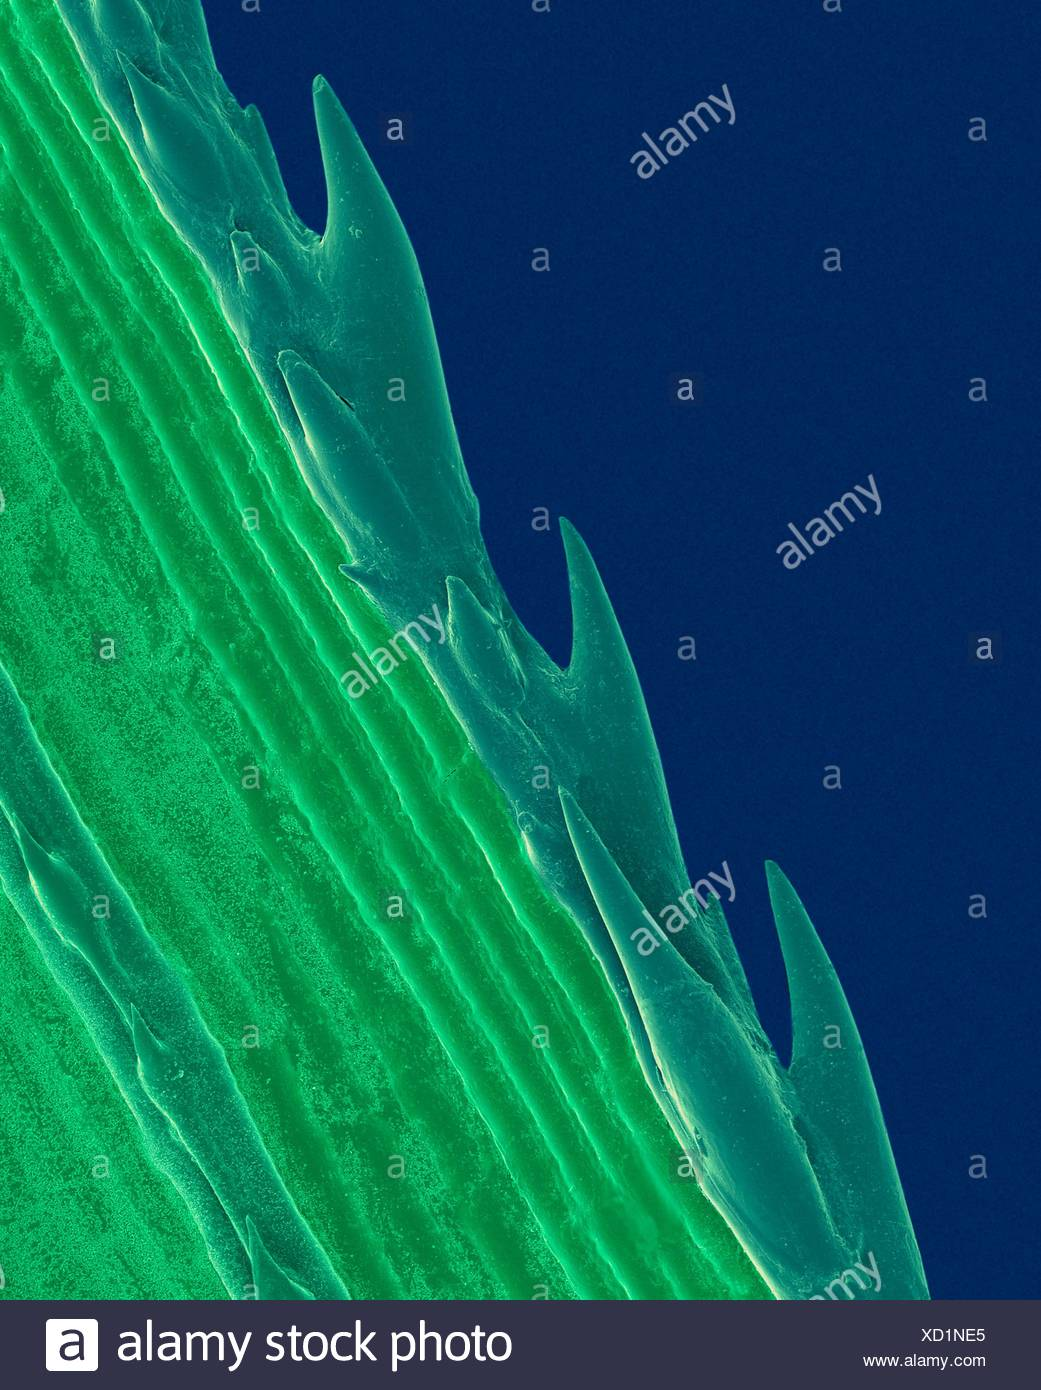 A blade of grass with serrated edge (Paspalum sp),coloured scanning electron micrograph (SEM).Plants evolve specialized physical chemical characteristics in natural defence against stresses in their environments.The sharp saw-toothed edge of blade of grass protects against herbivores.Paspalum is - Stock Image